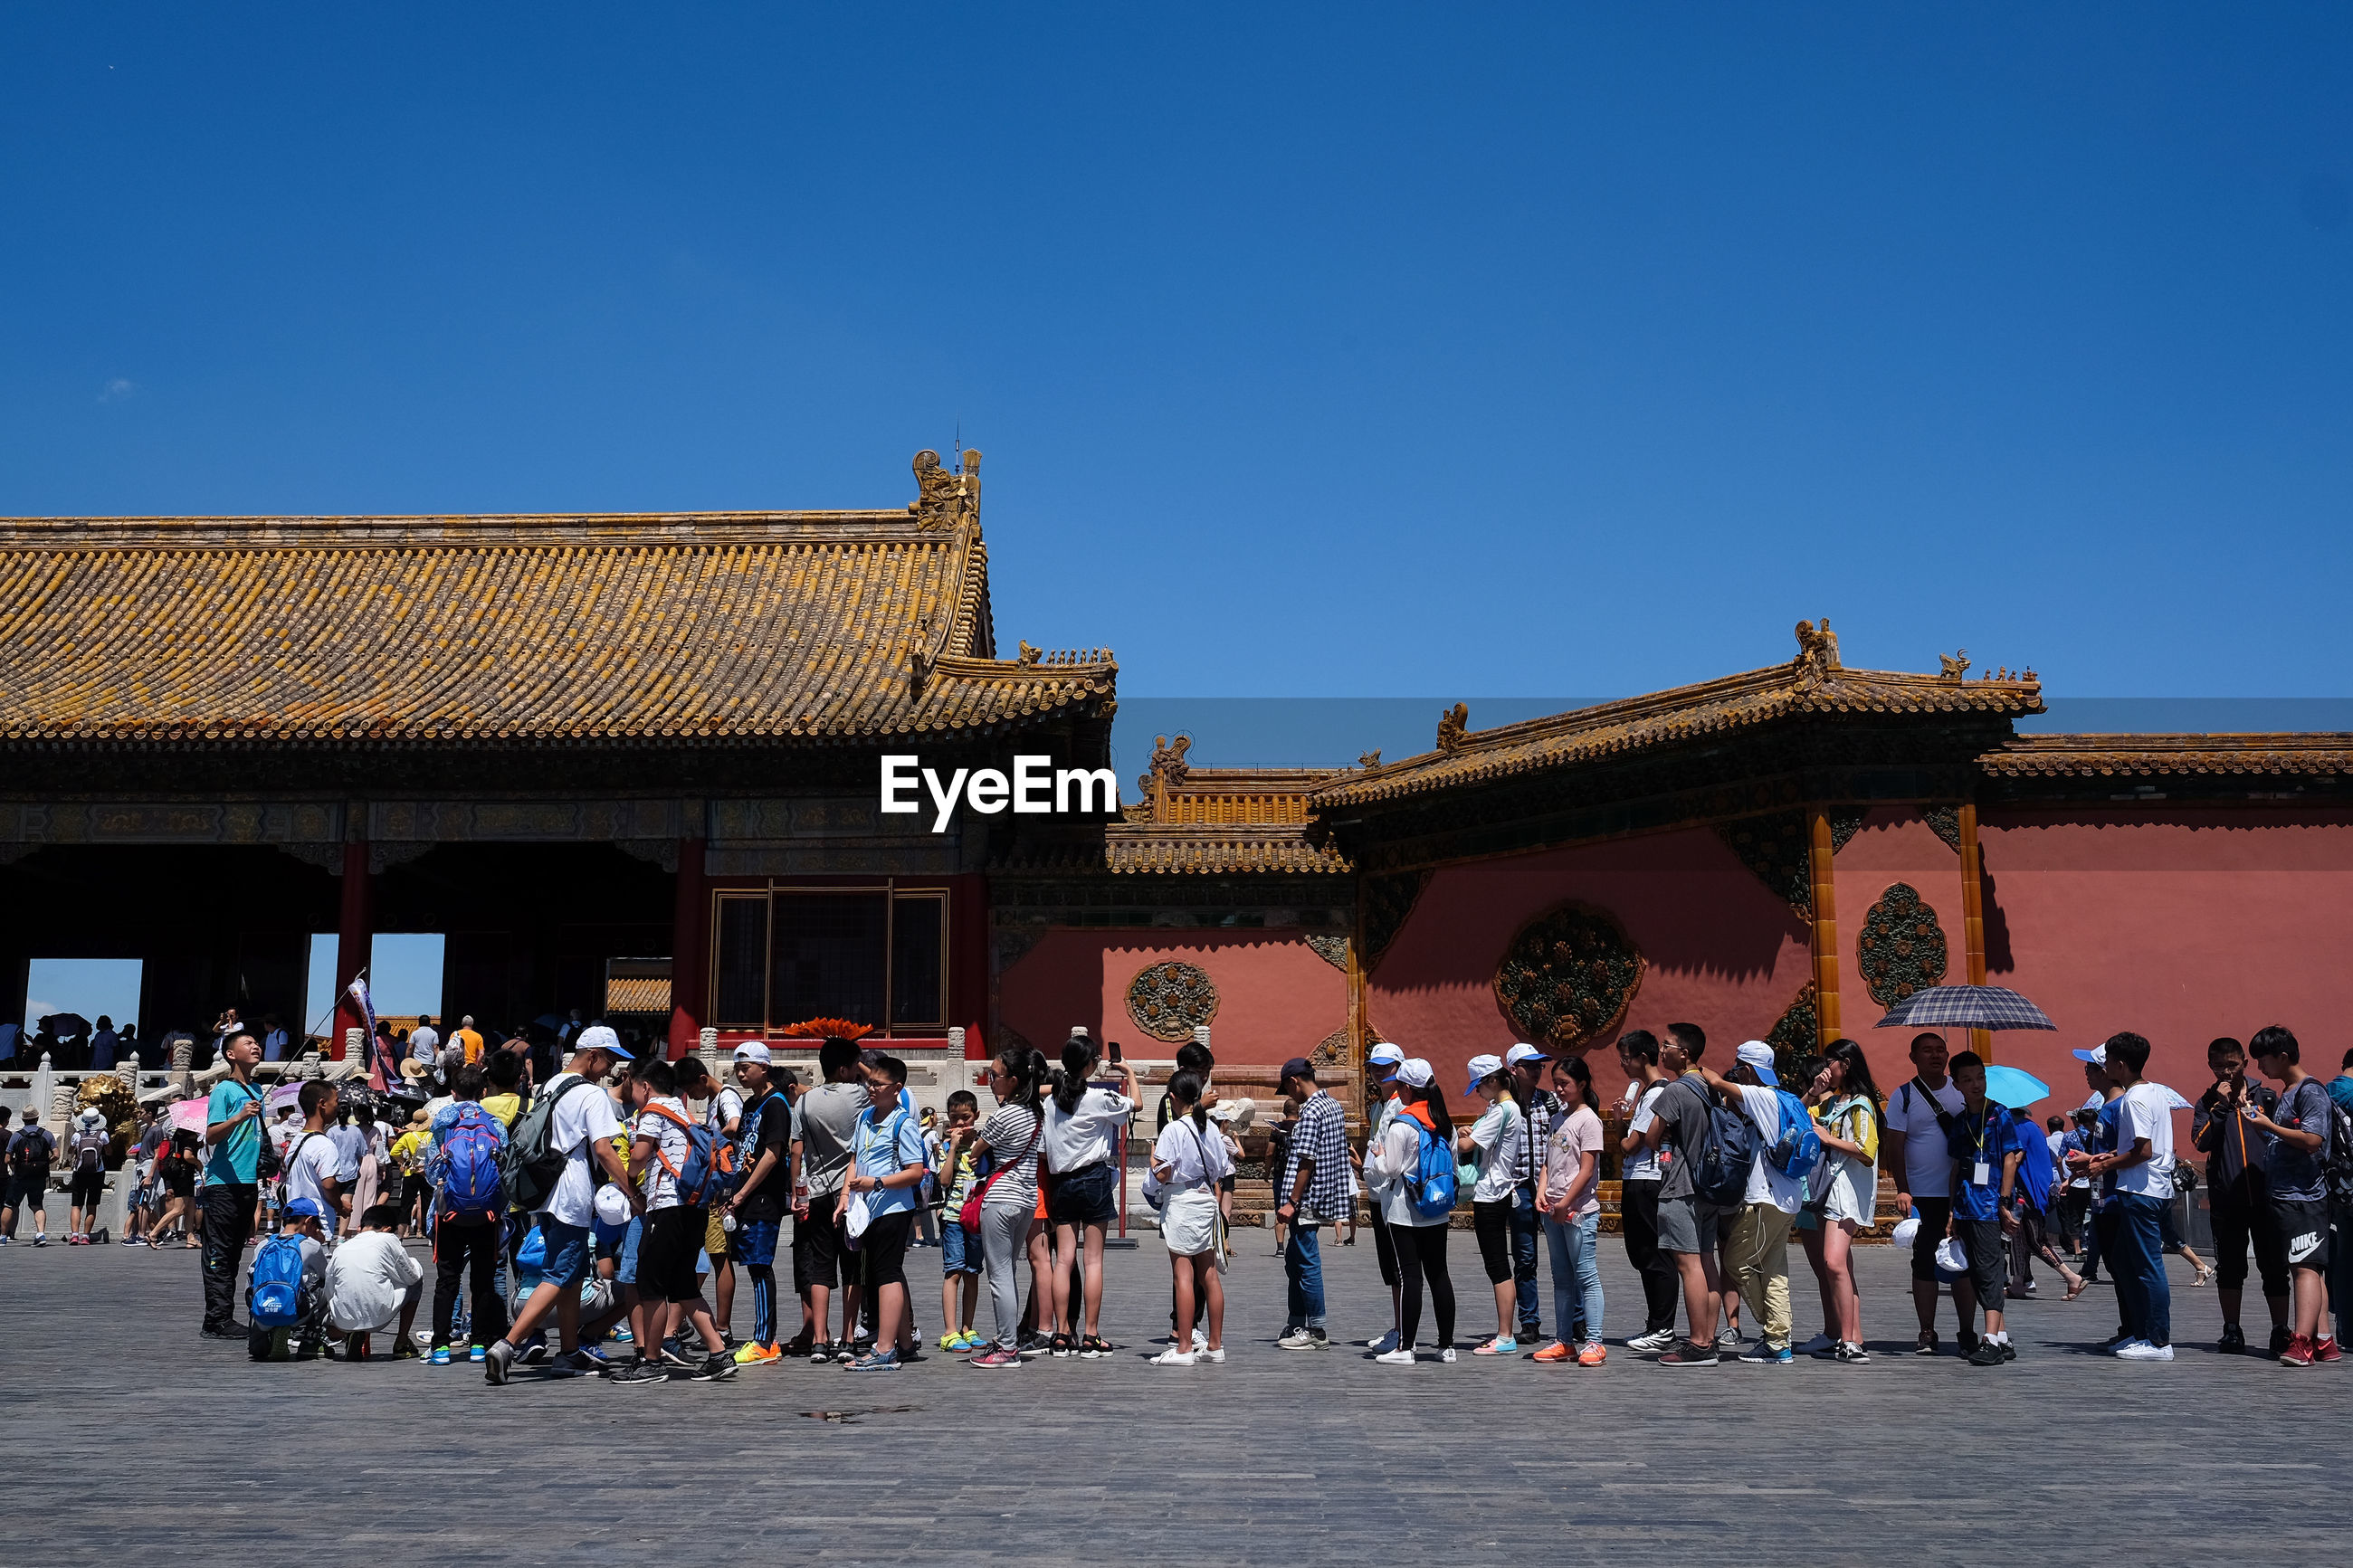 GROUP OF PEOPLE AGAINST BLUE SKY